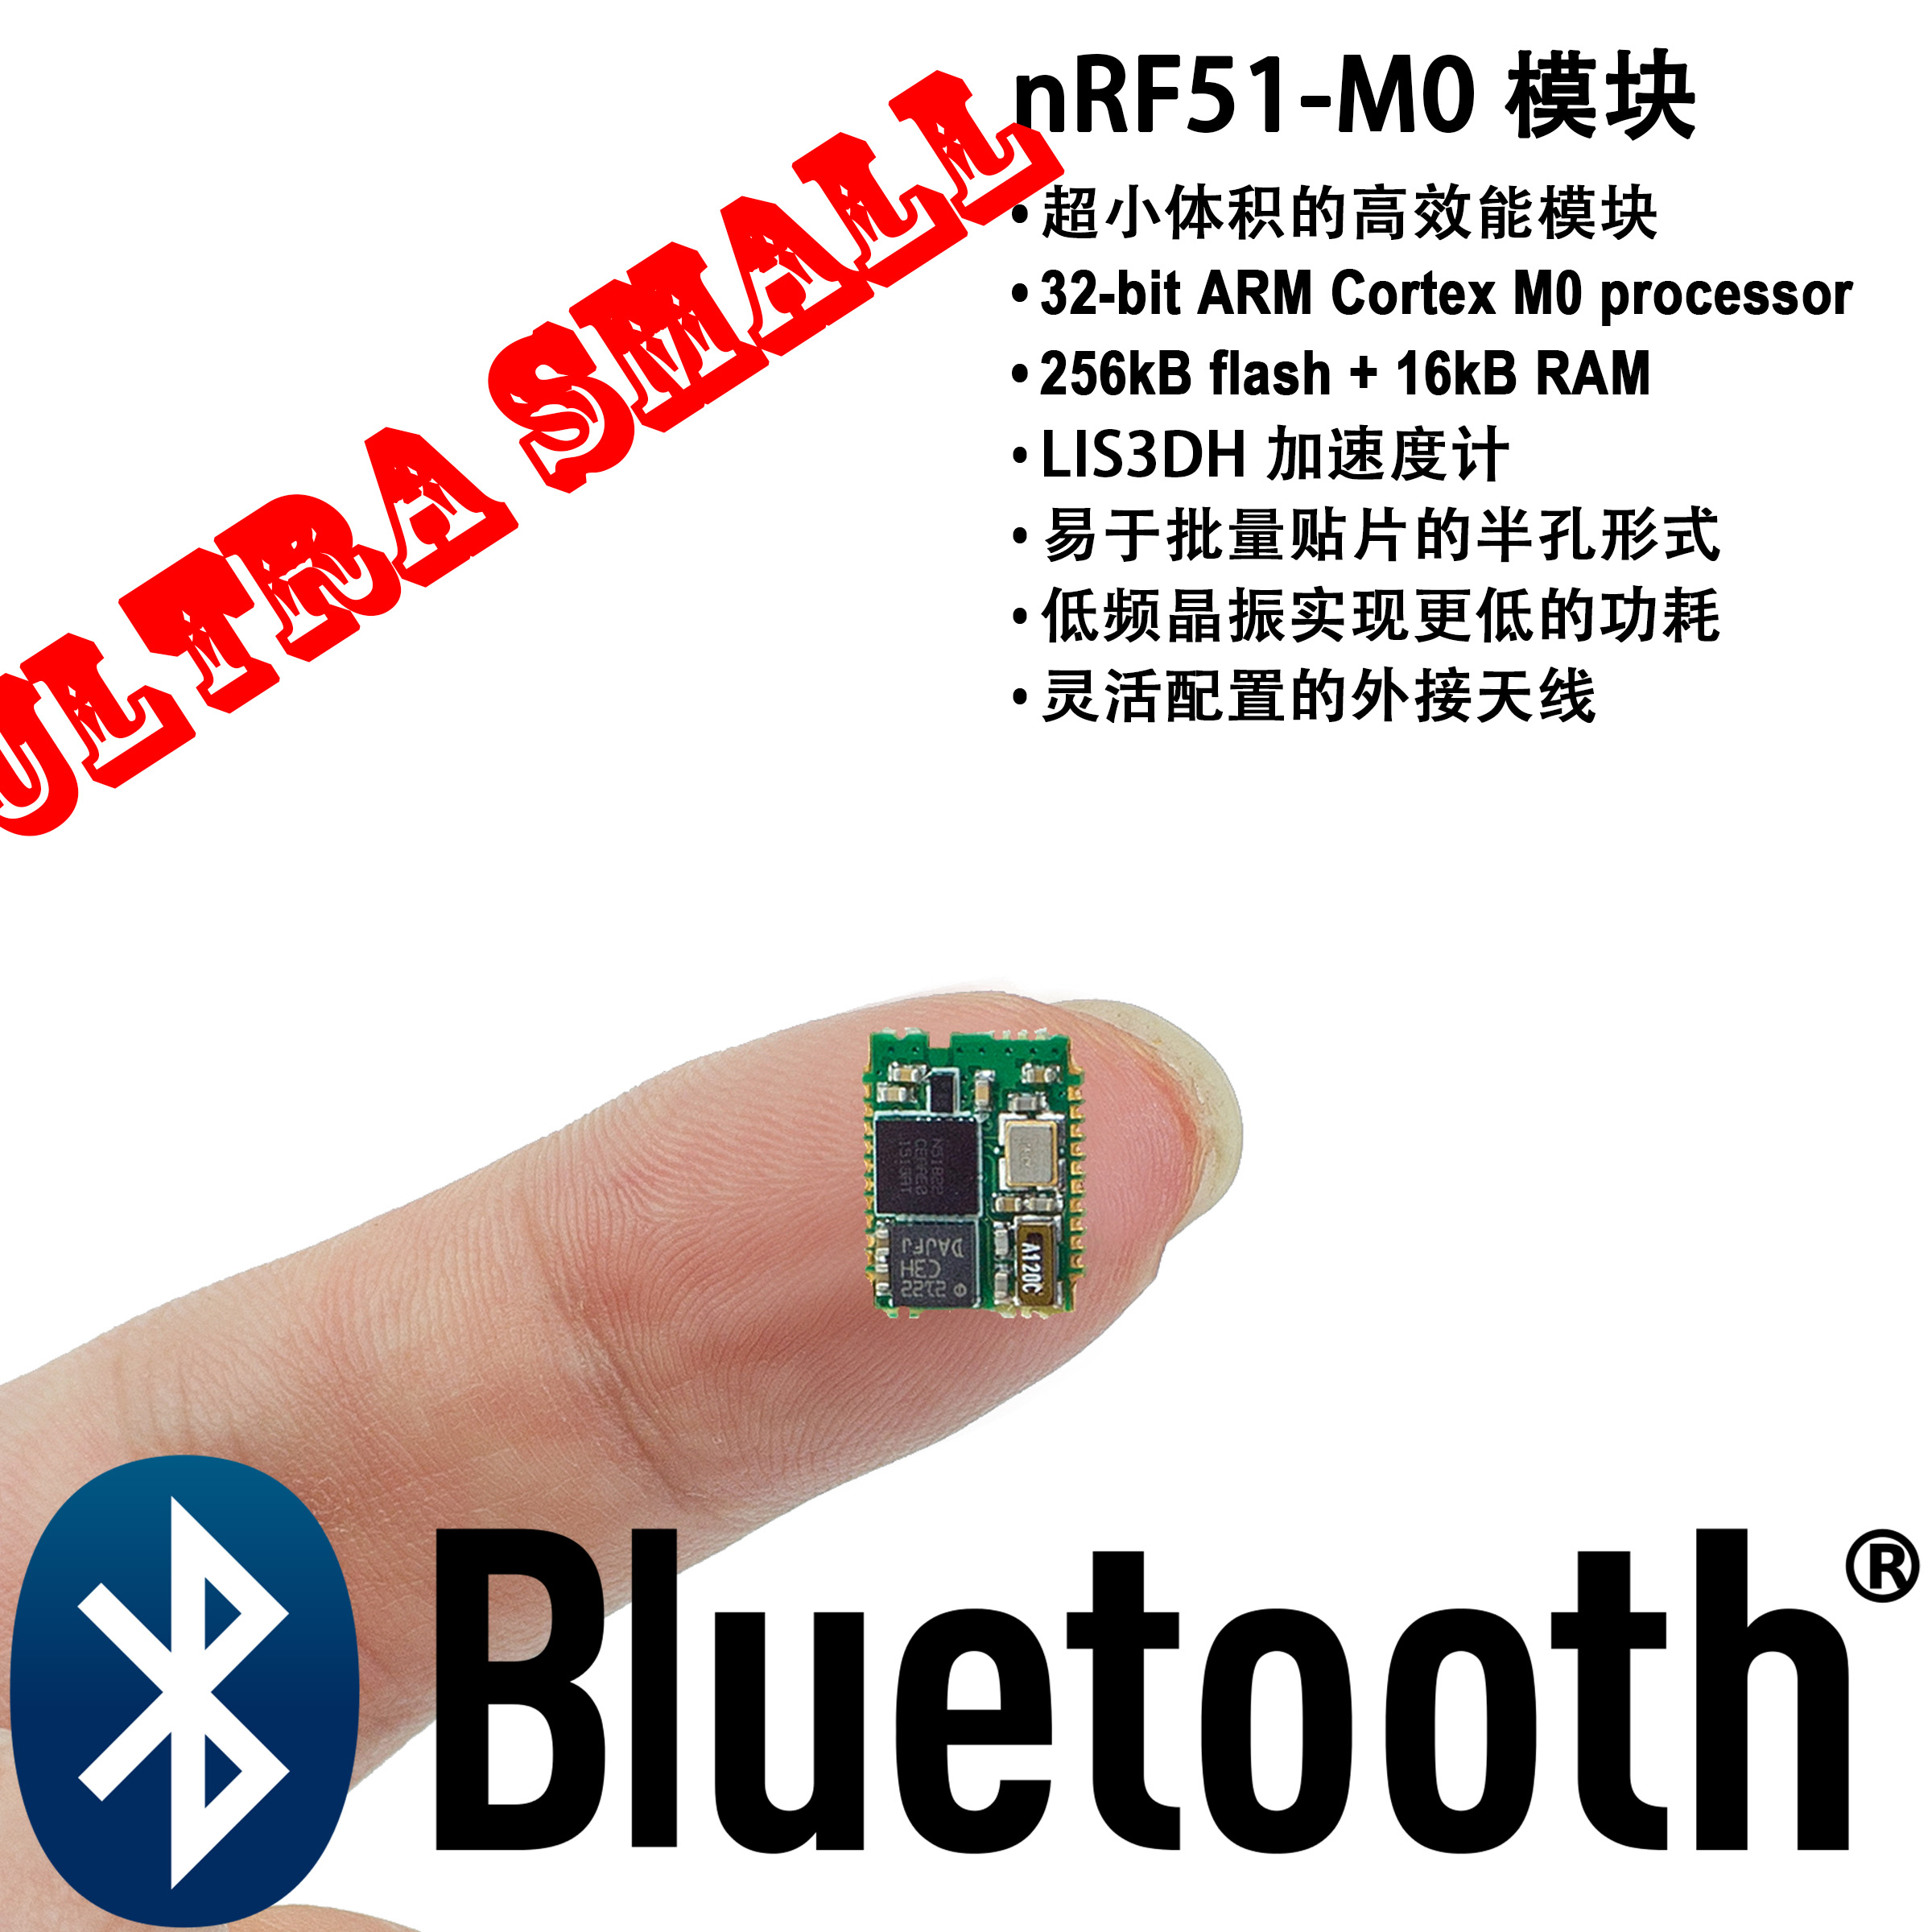 Ultra small size M0 nRF51822 Bluetooth module BLE board LIS3DH industry small Baidu Bracelet брюки тренировочные adidas tiro17 swt pnt bq2678